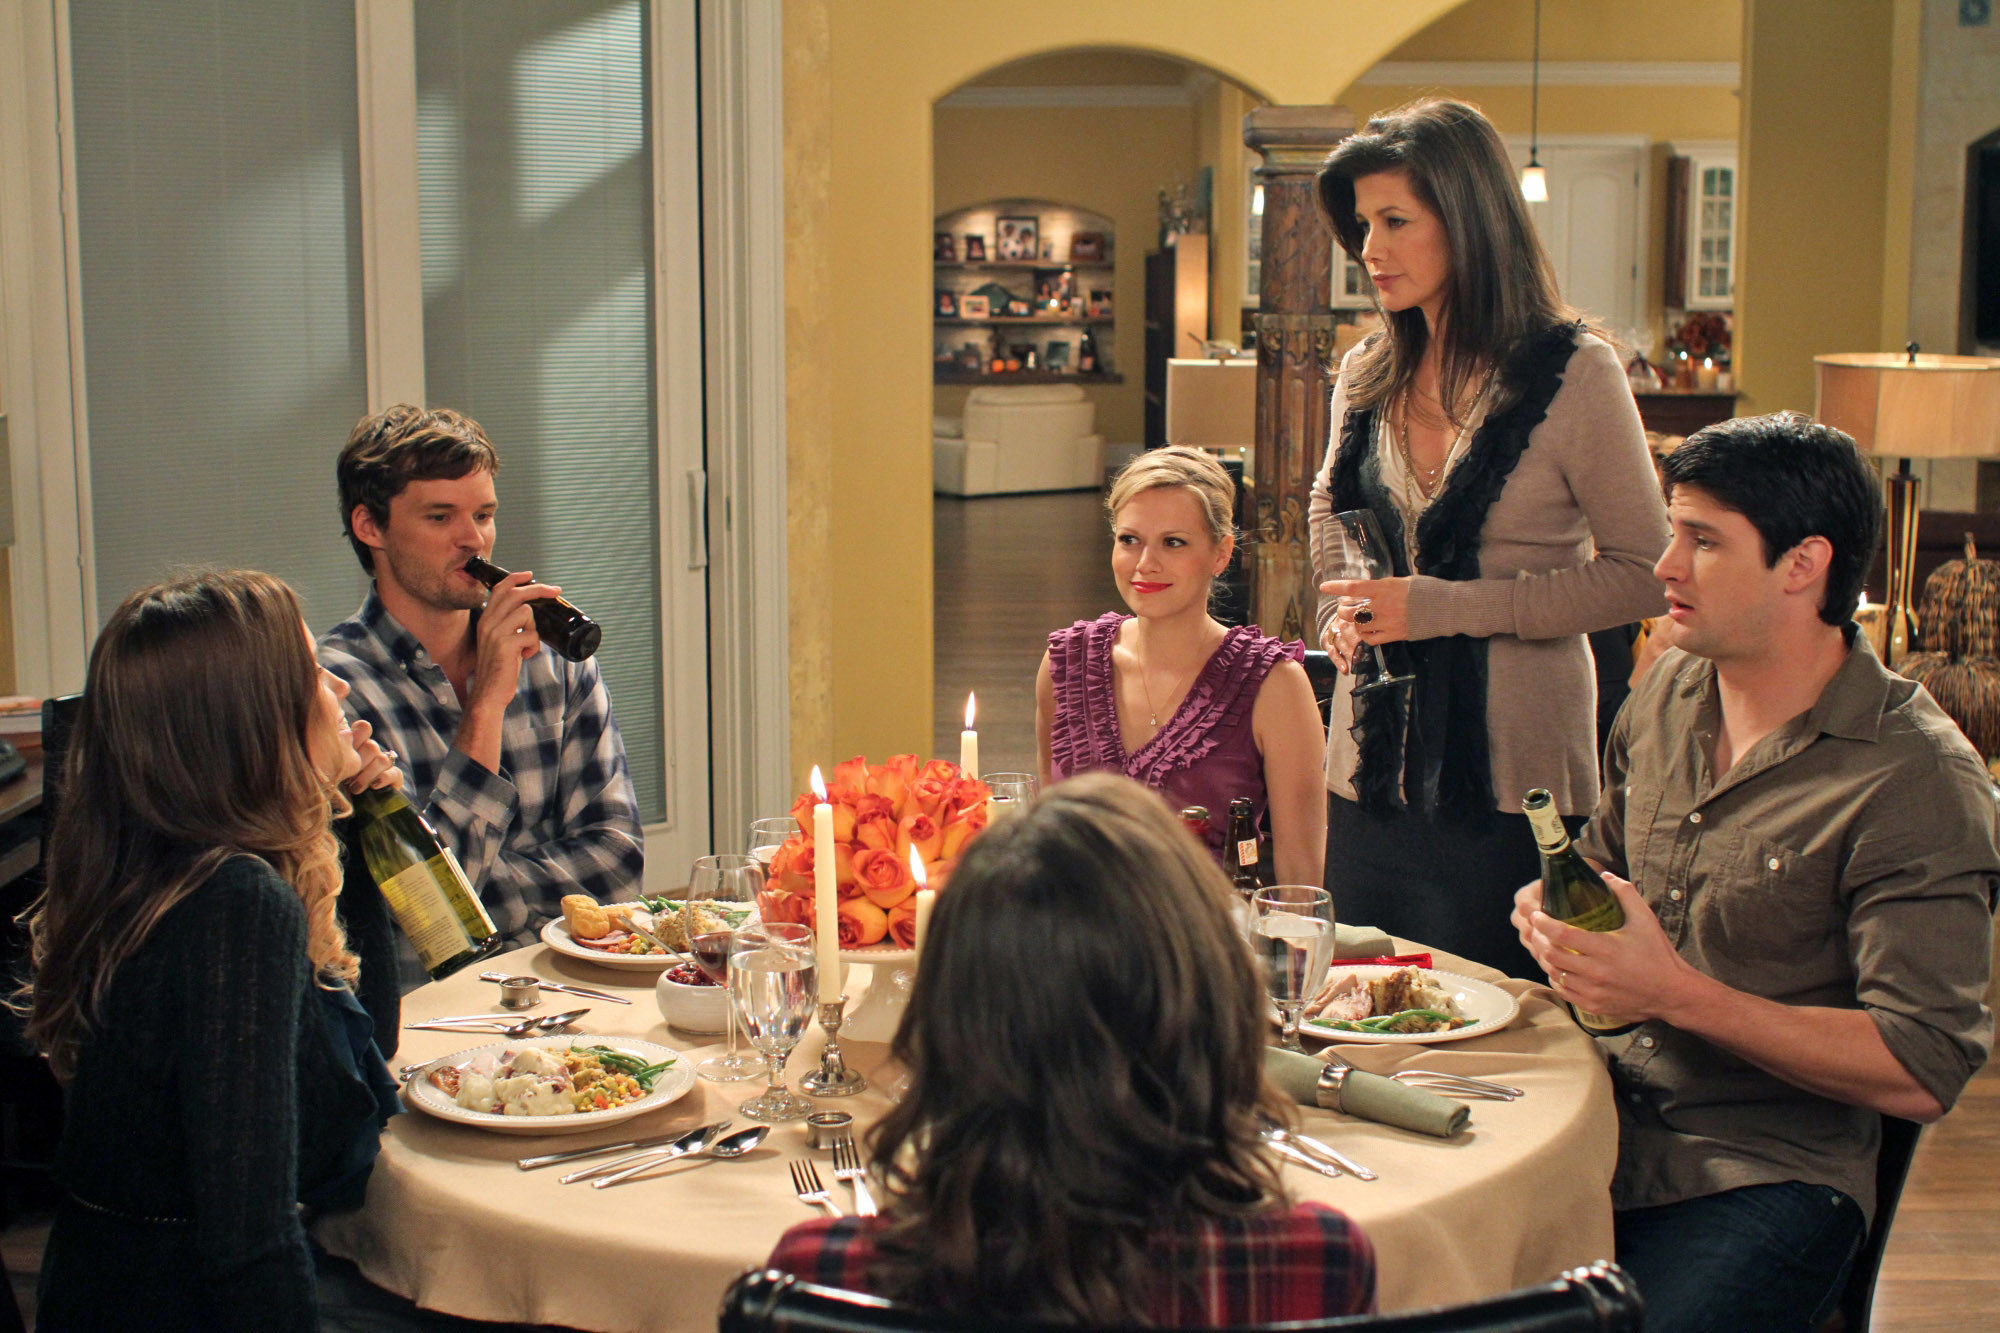 The cast of One Tree Hill sit at the dinner table together: Sophia Bush, Austin Nichols, Kate Voegele, Bethany Joy Galeotti, Daphne Zuniga, and James Lafferty